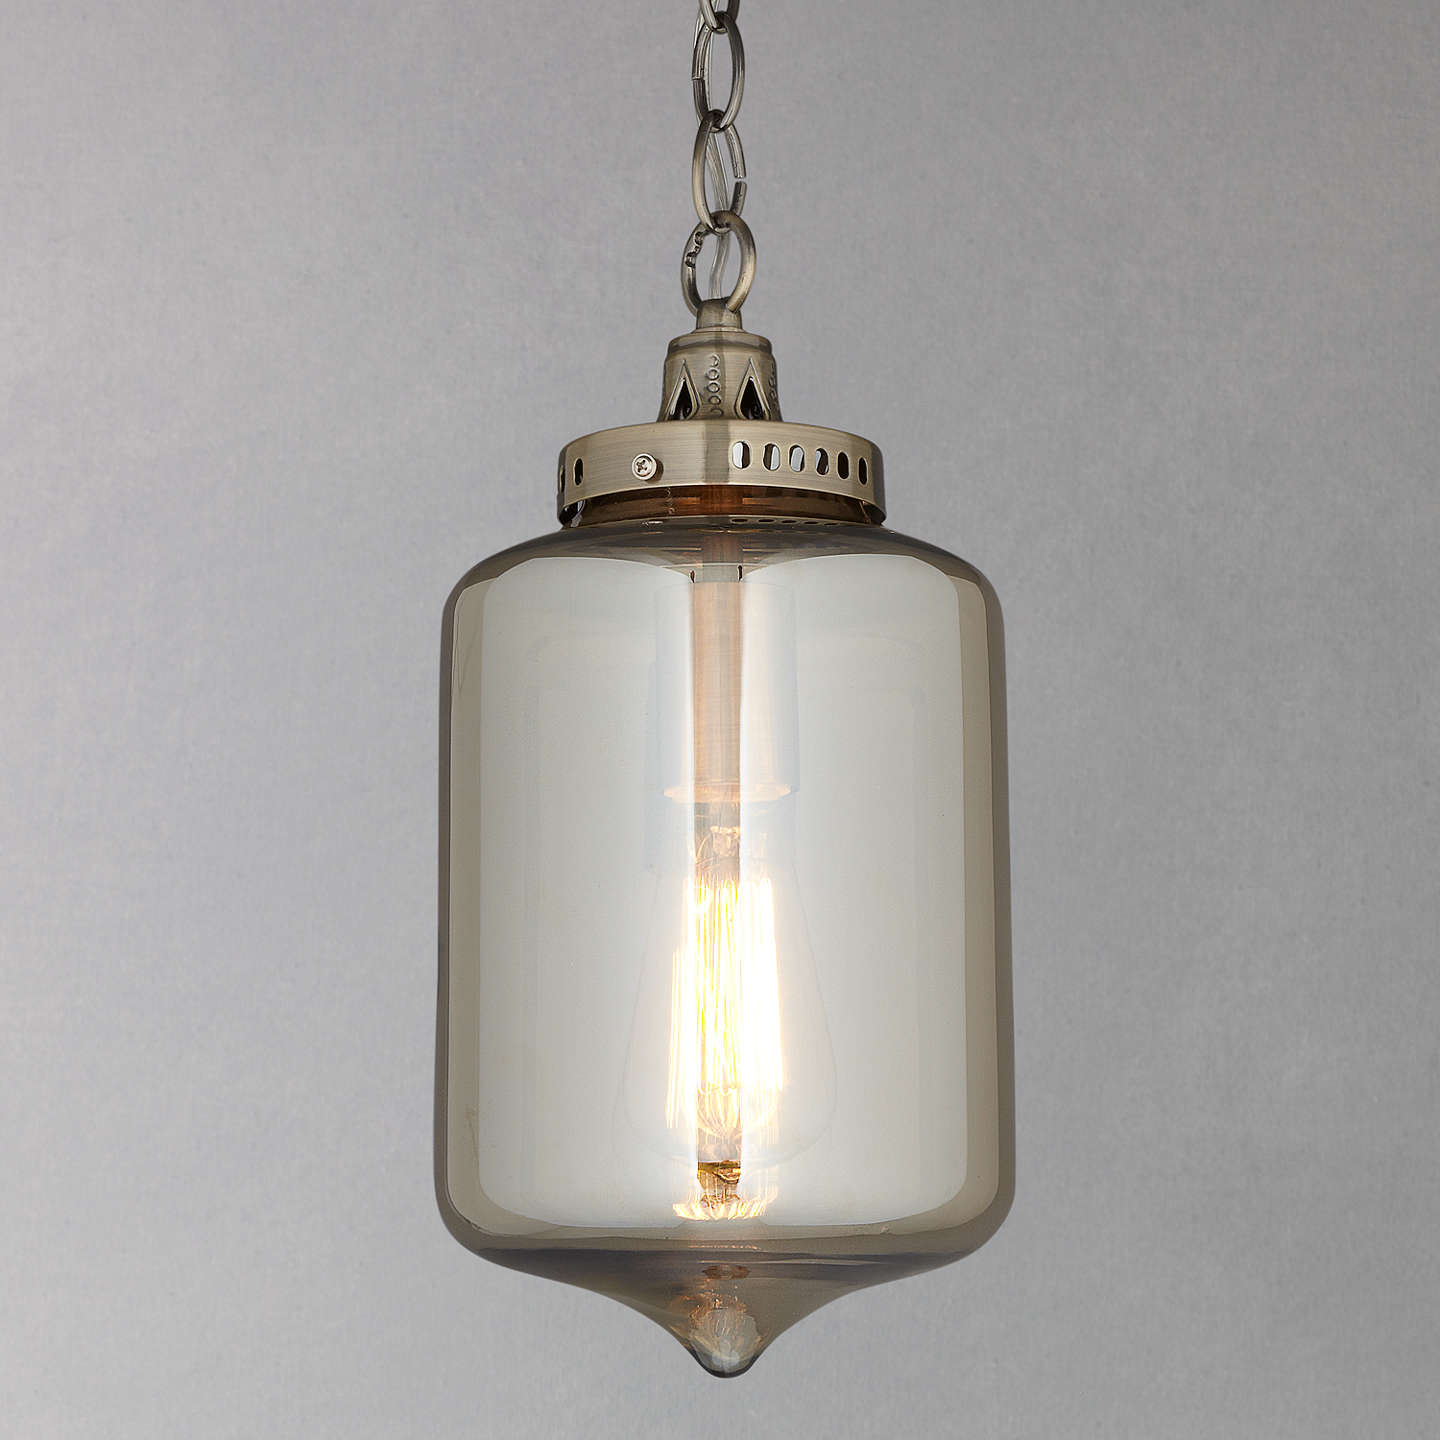 home pendant lantern modern light designs of asian image